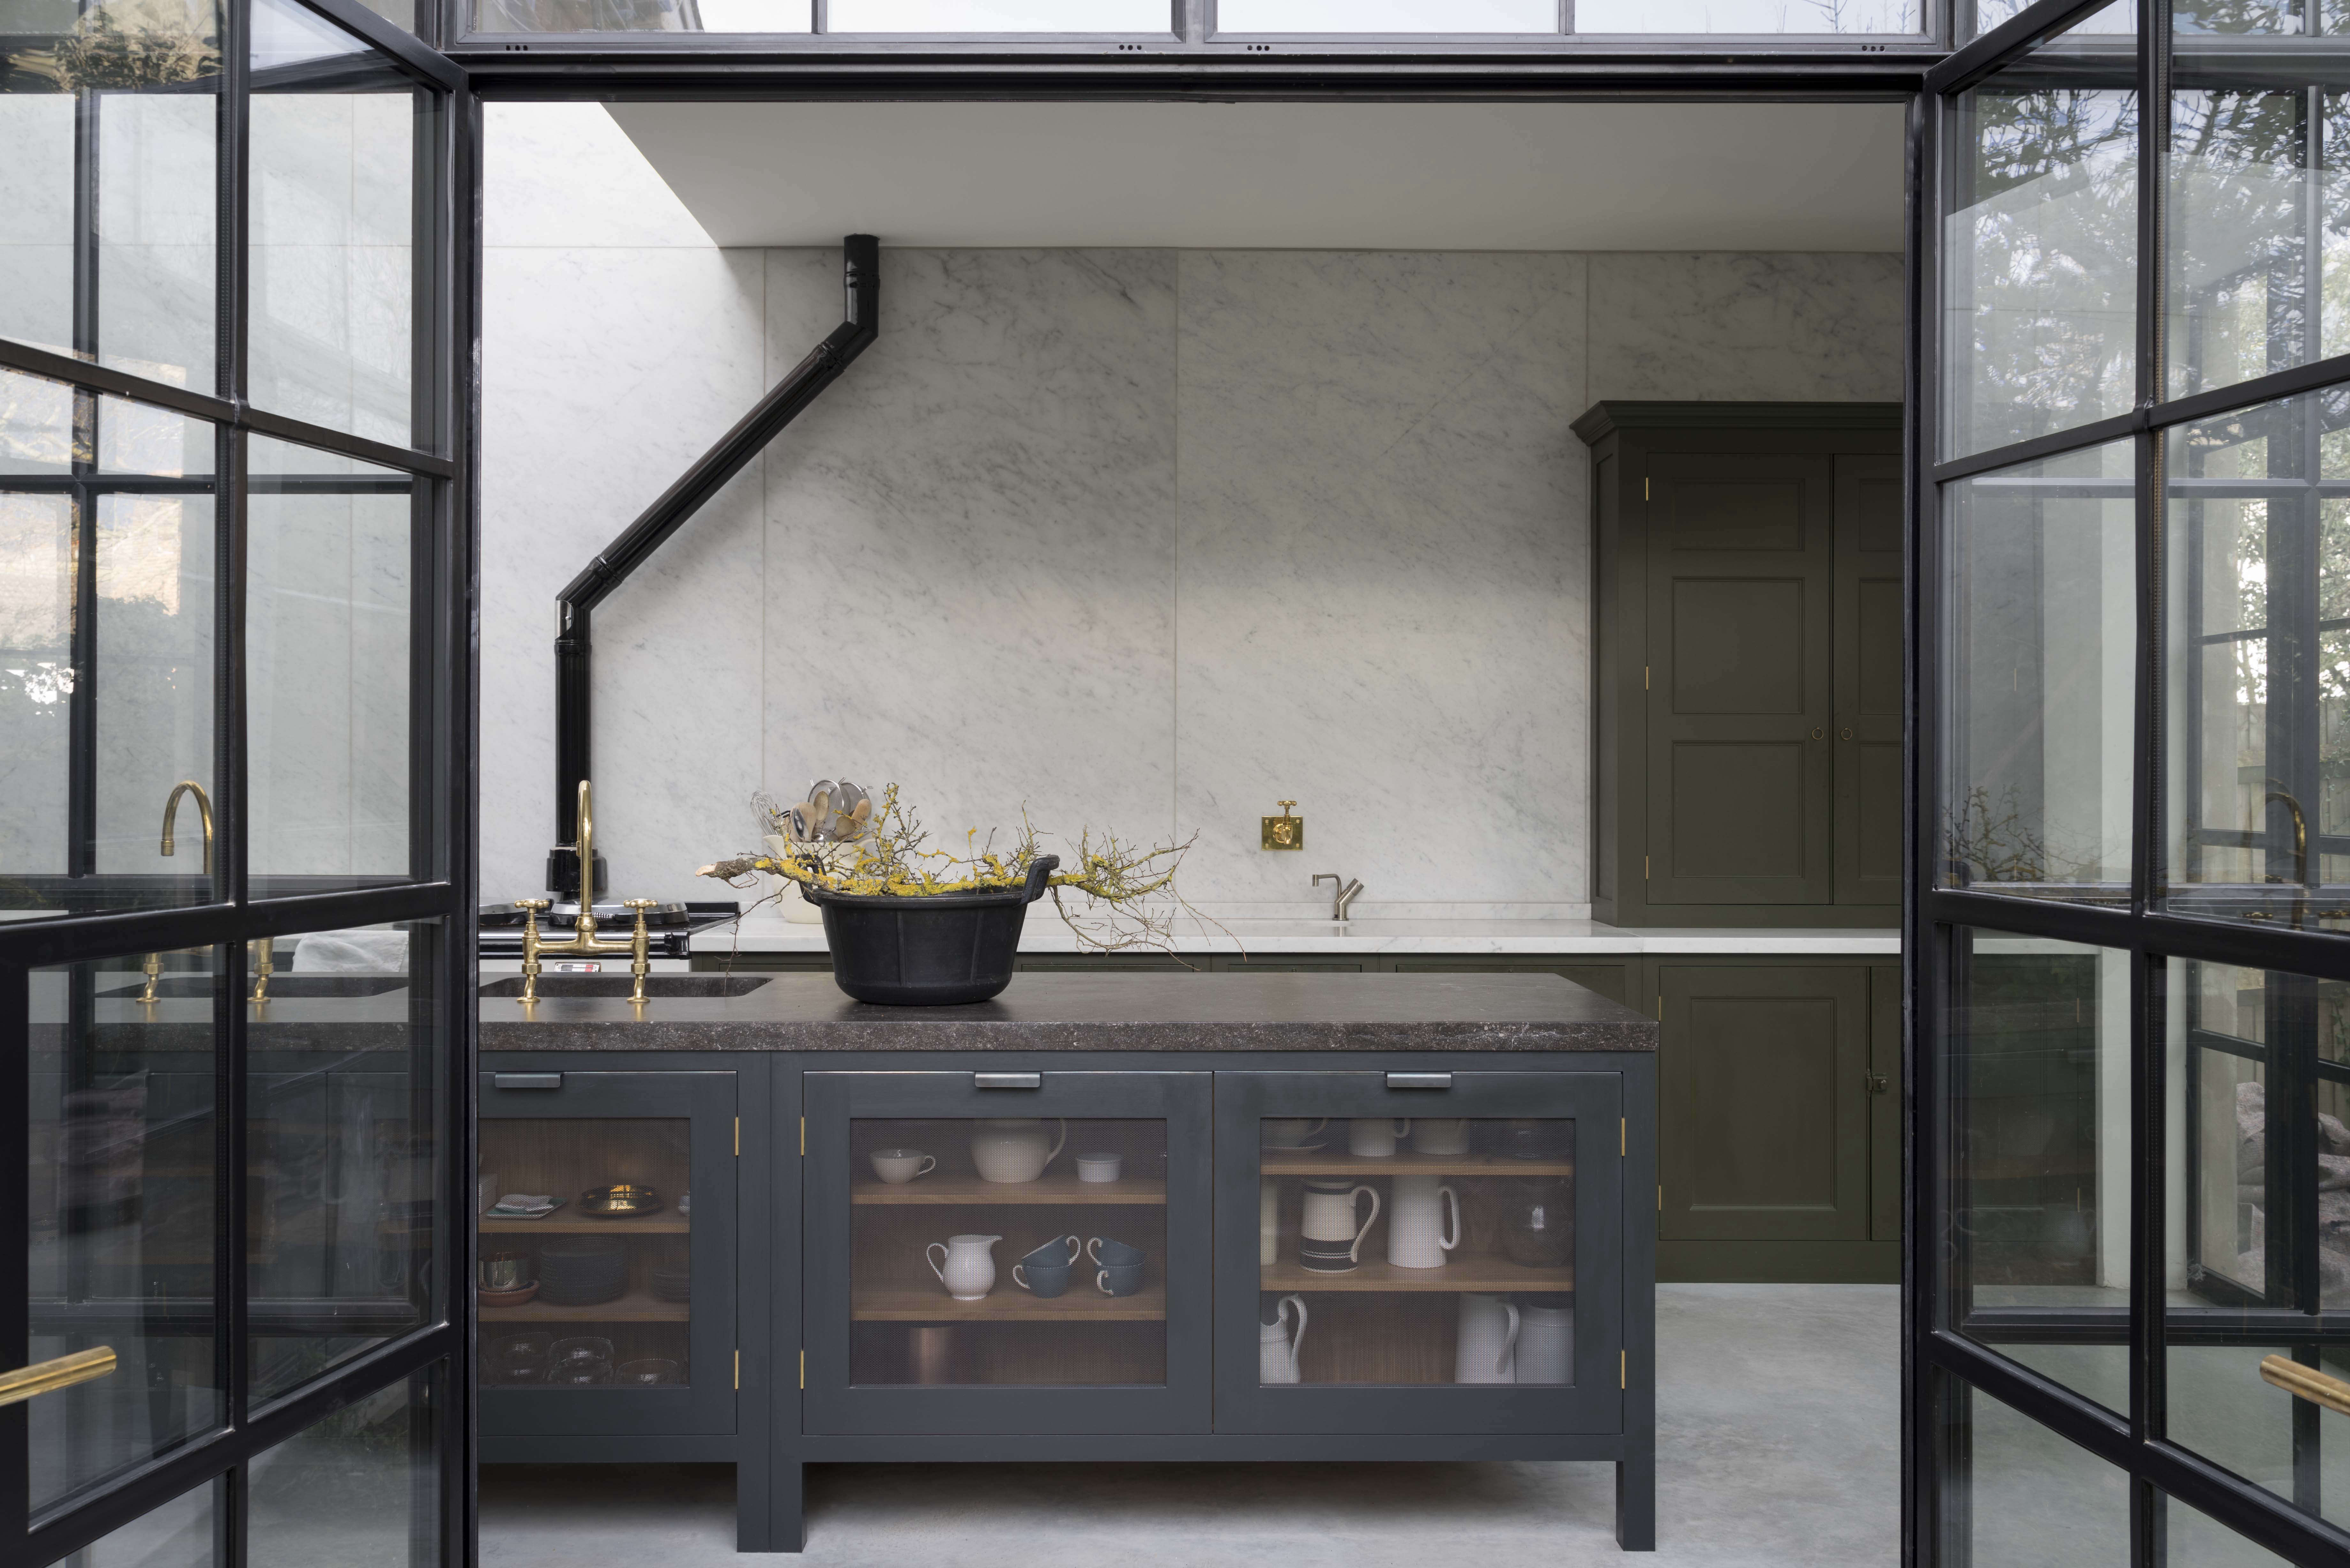 steal this look: a subtly glamorous kitchen in north london